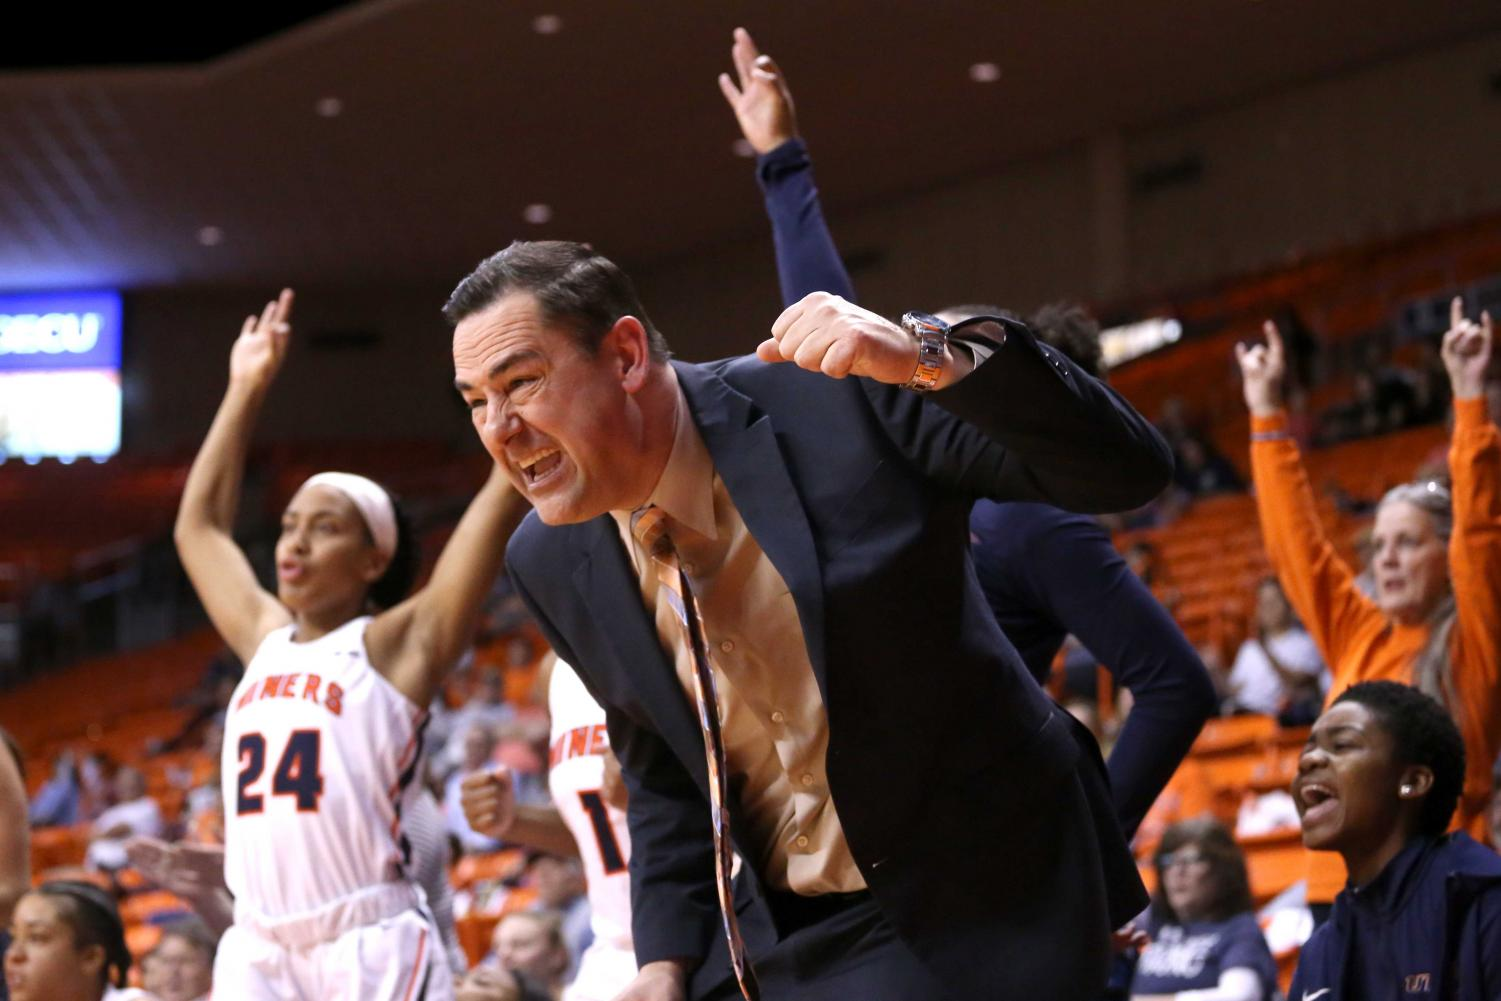 Head+coach+Kevin+Baker+celebrates+as+the+miners+score+three+on+Saturday%2C+March+3+at+the+Don+Haskins+Center.